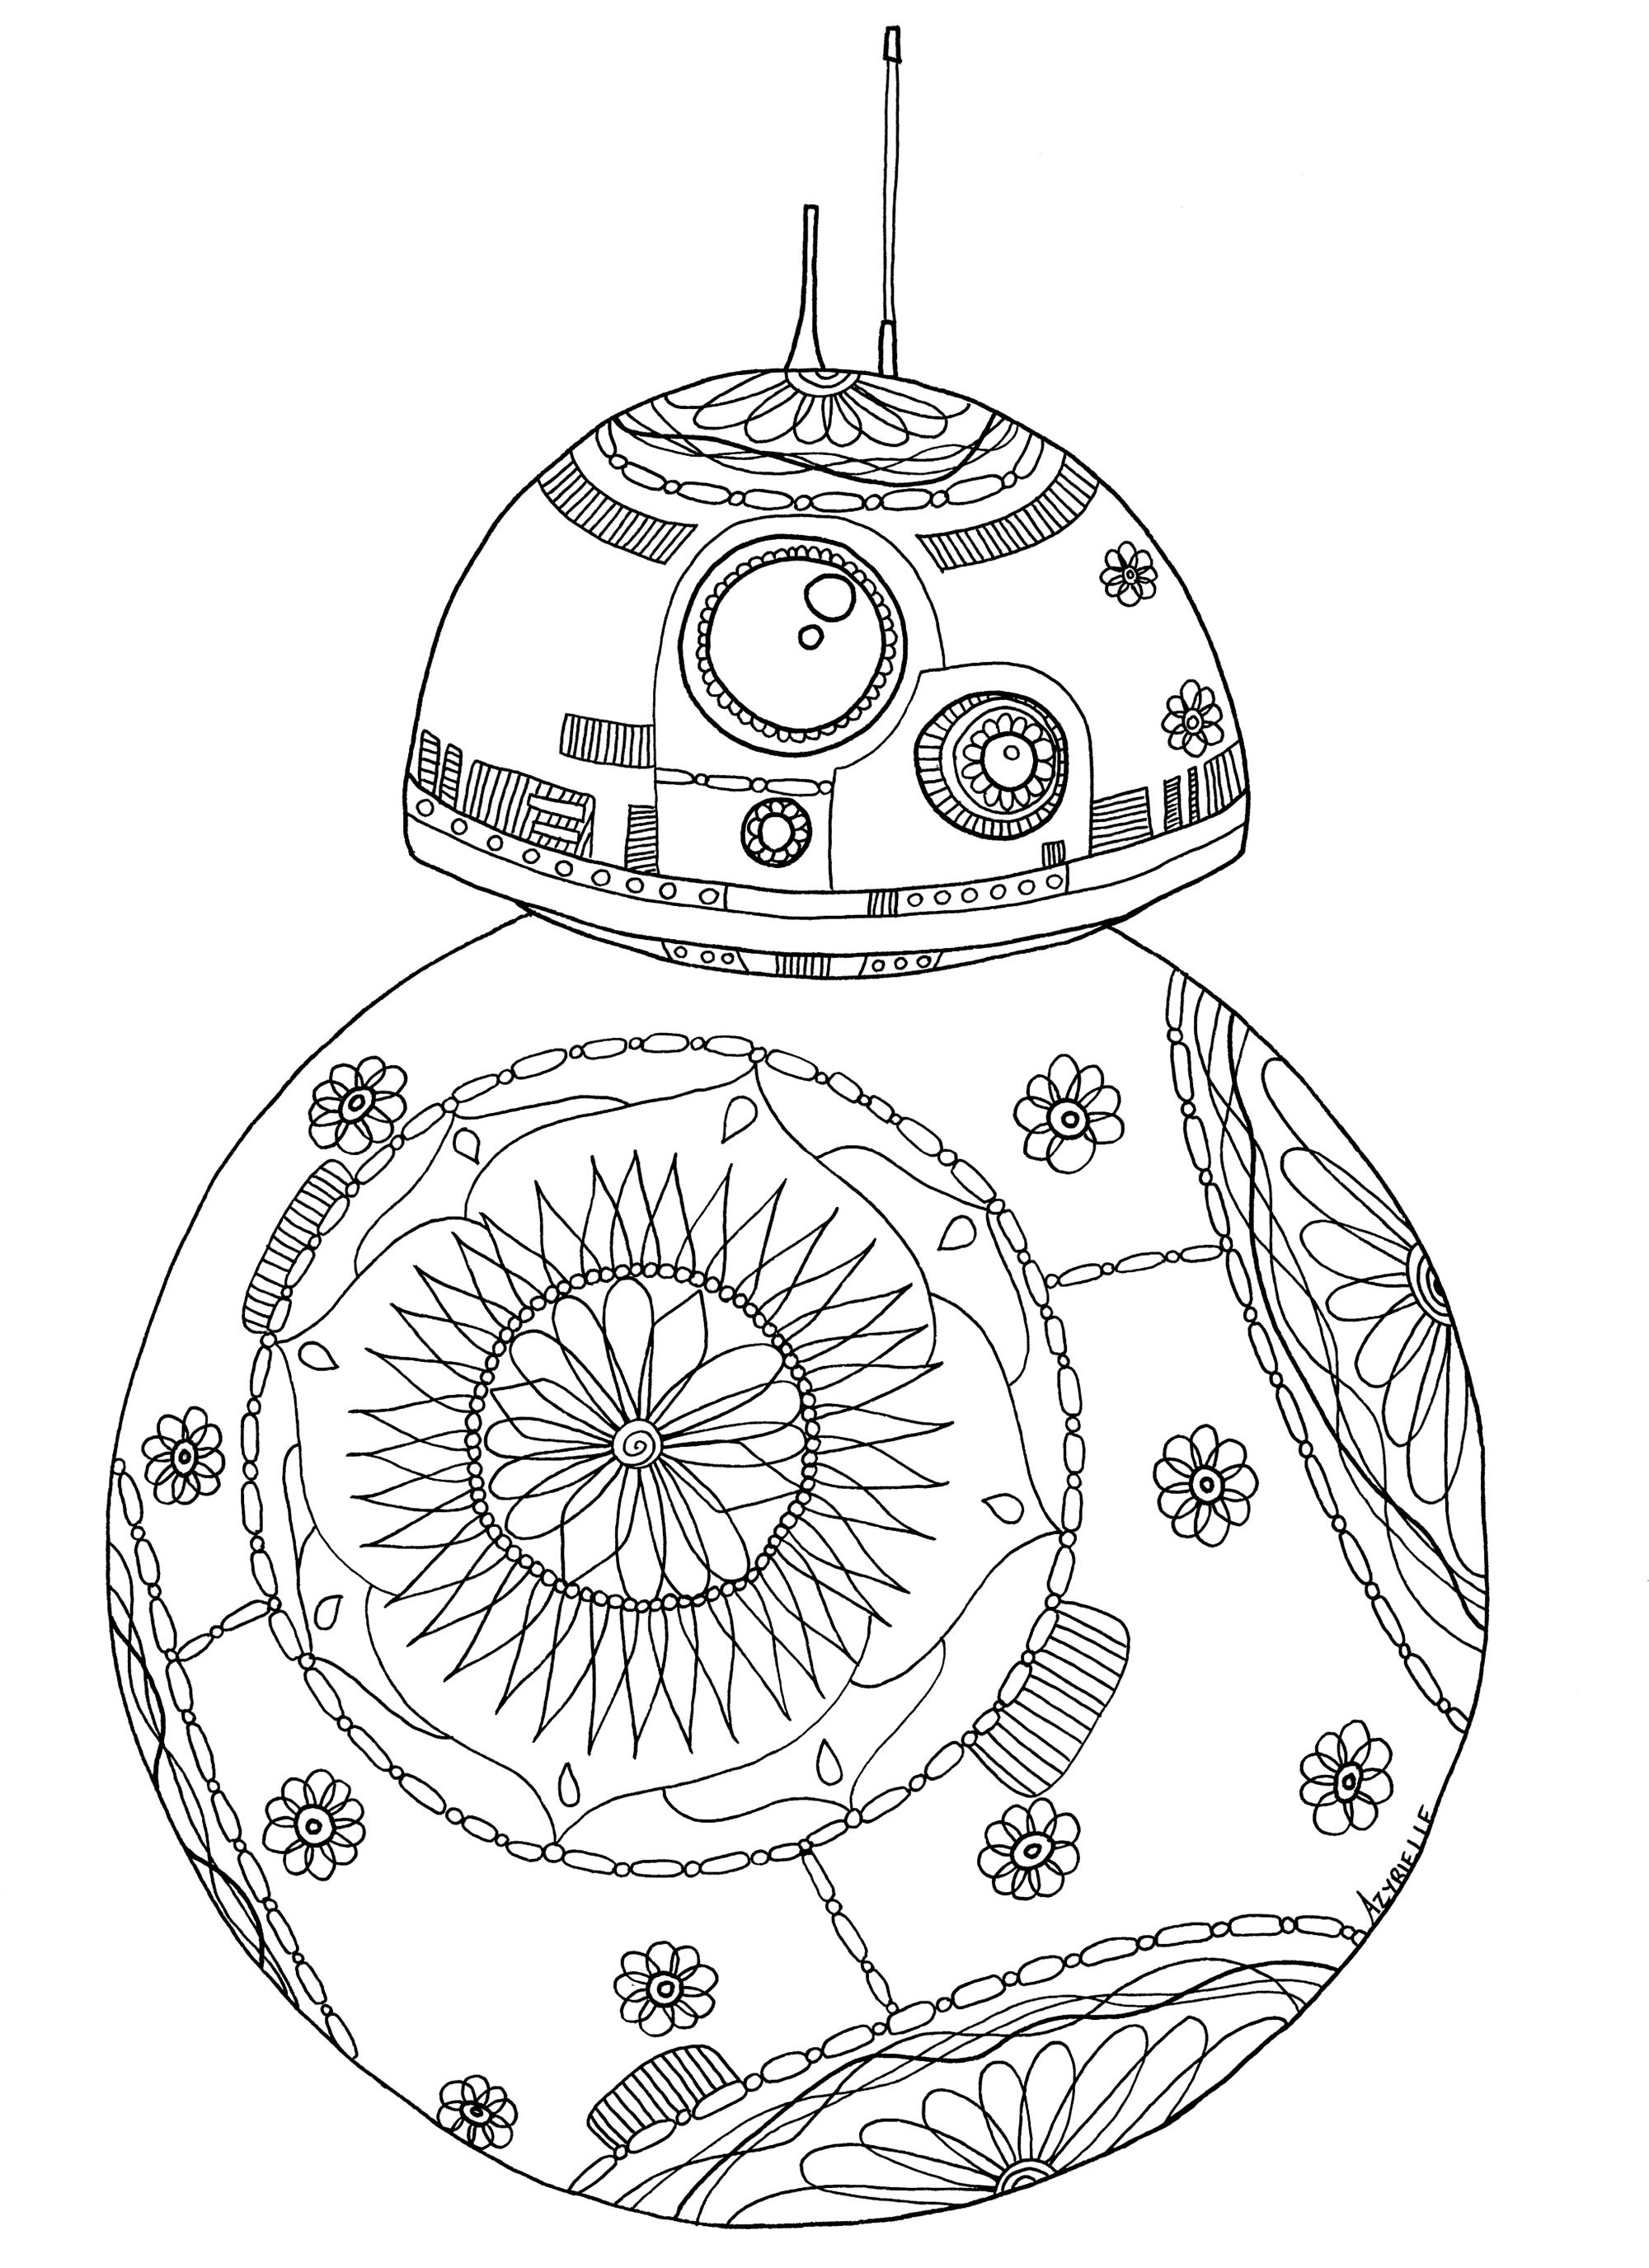 star wars coloring pictures star wars for children star wars kids coloring pages coloring pictures wars star